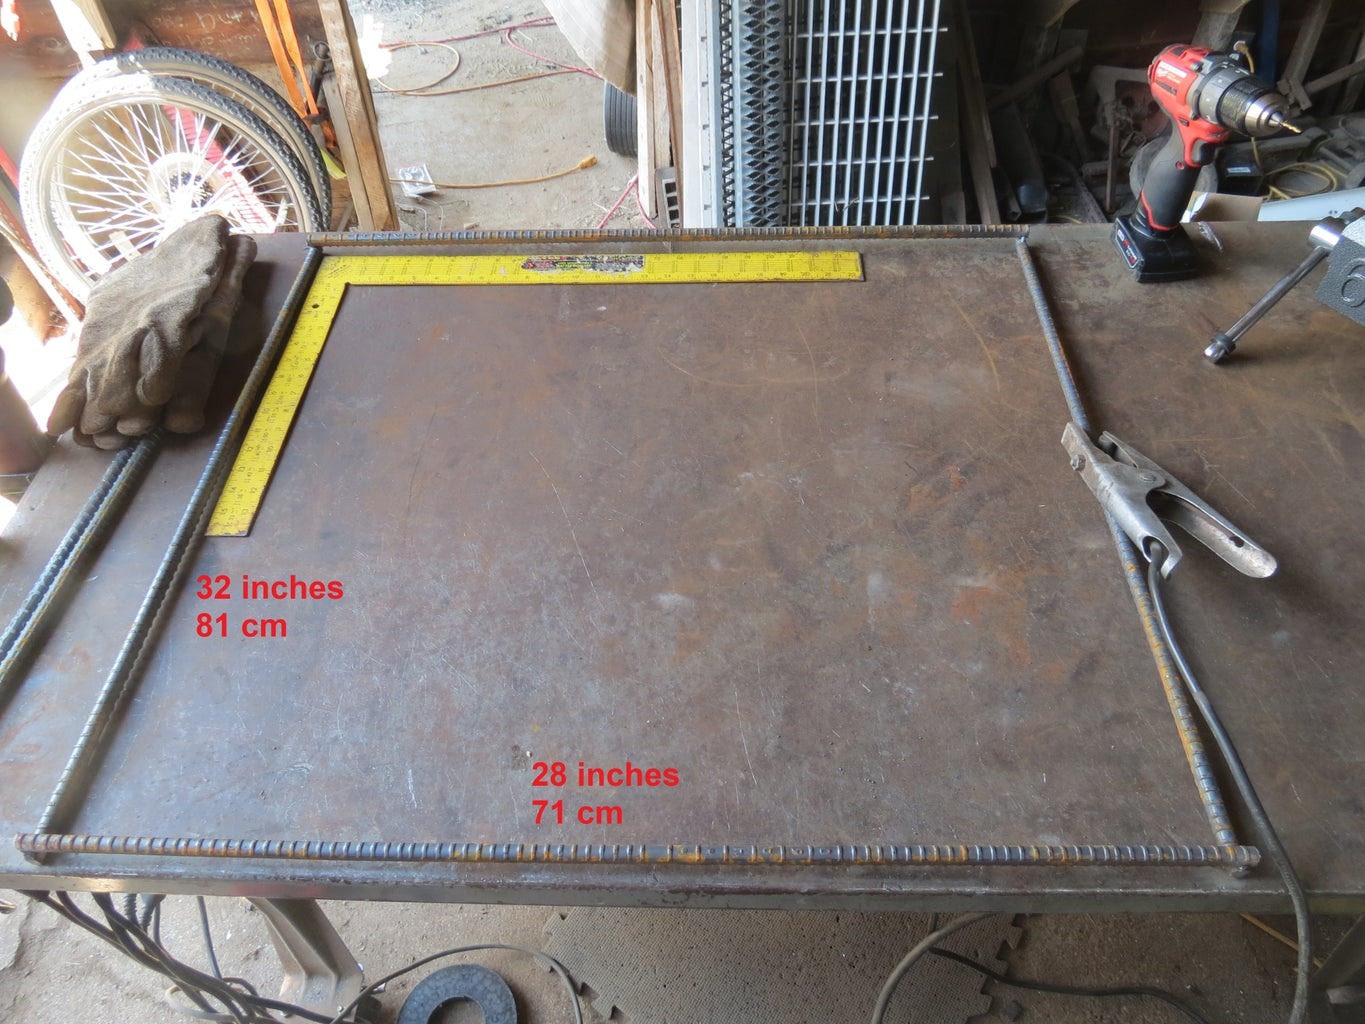 Cut Rebar and Weld Into a Rectangle With Short Bars on Top